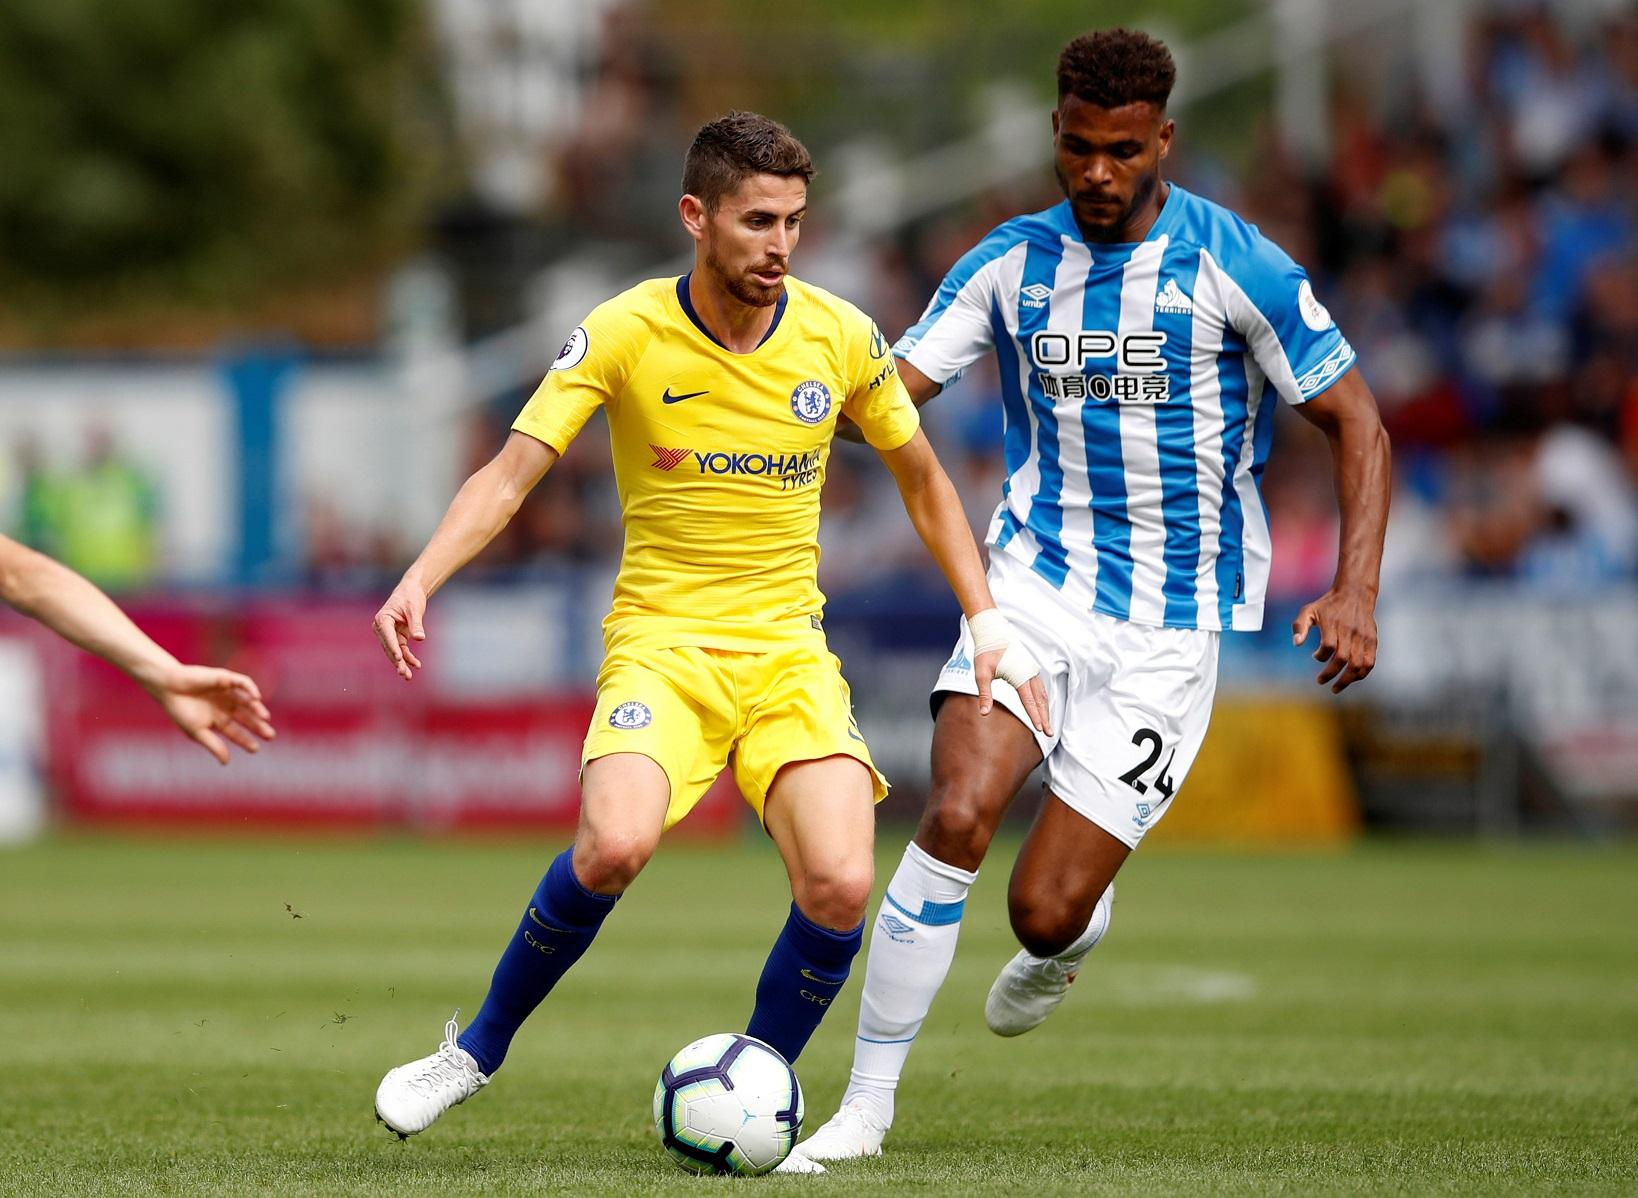 Wagner Quick To Praise Mounie